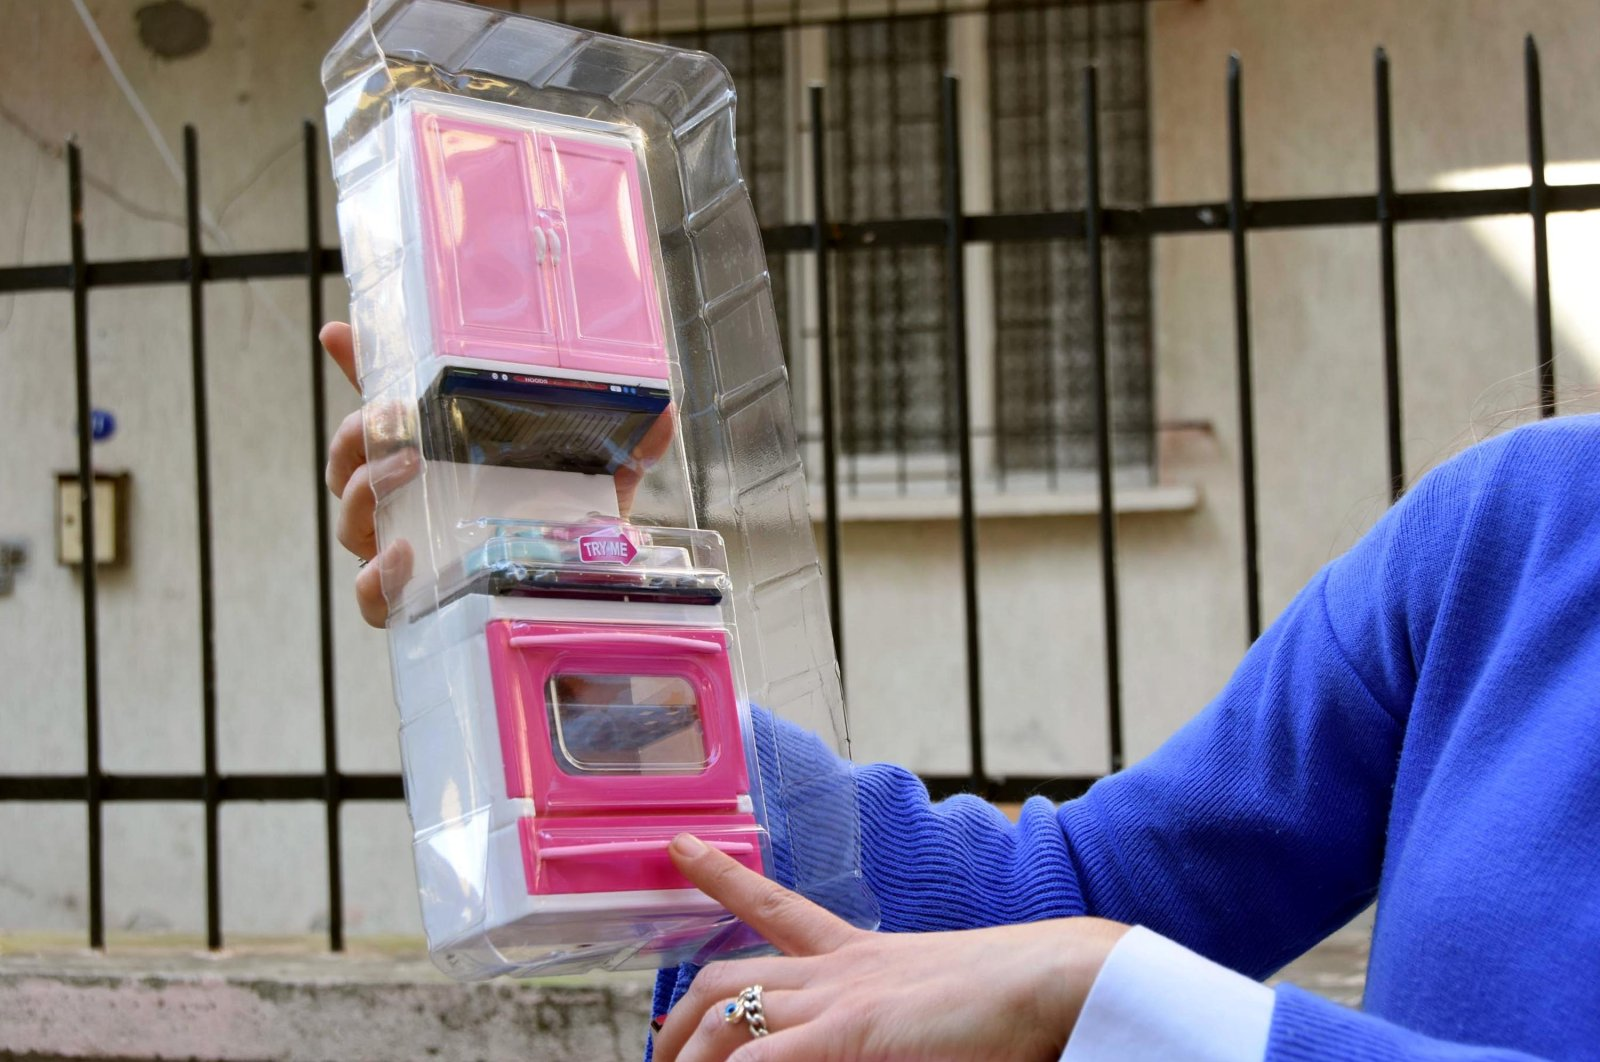 Selin Çamlıtepe displays the toy oven she received to the reporters, in Izmir, Turkey, March 9, 2021. (DHA Photo)